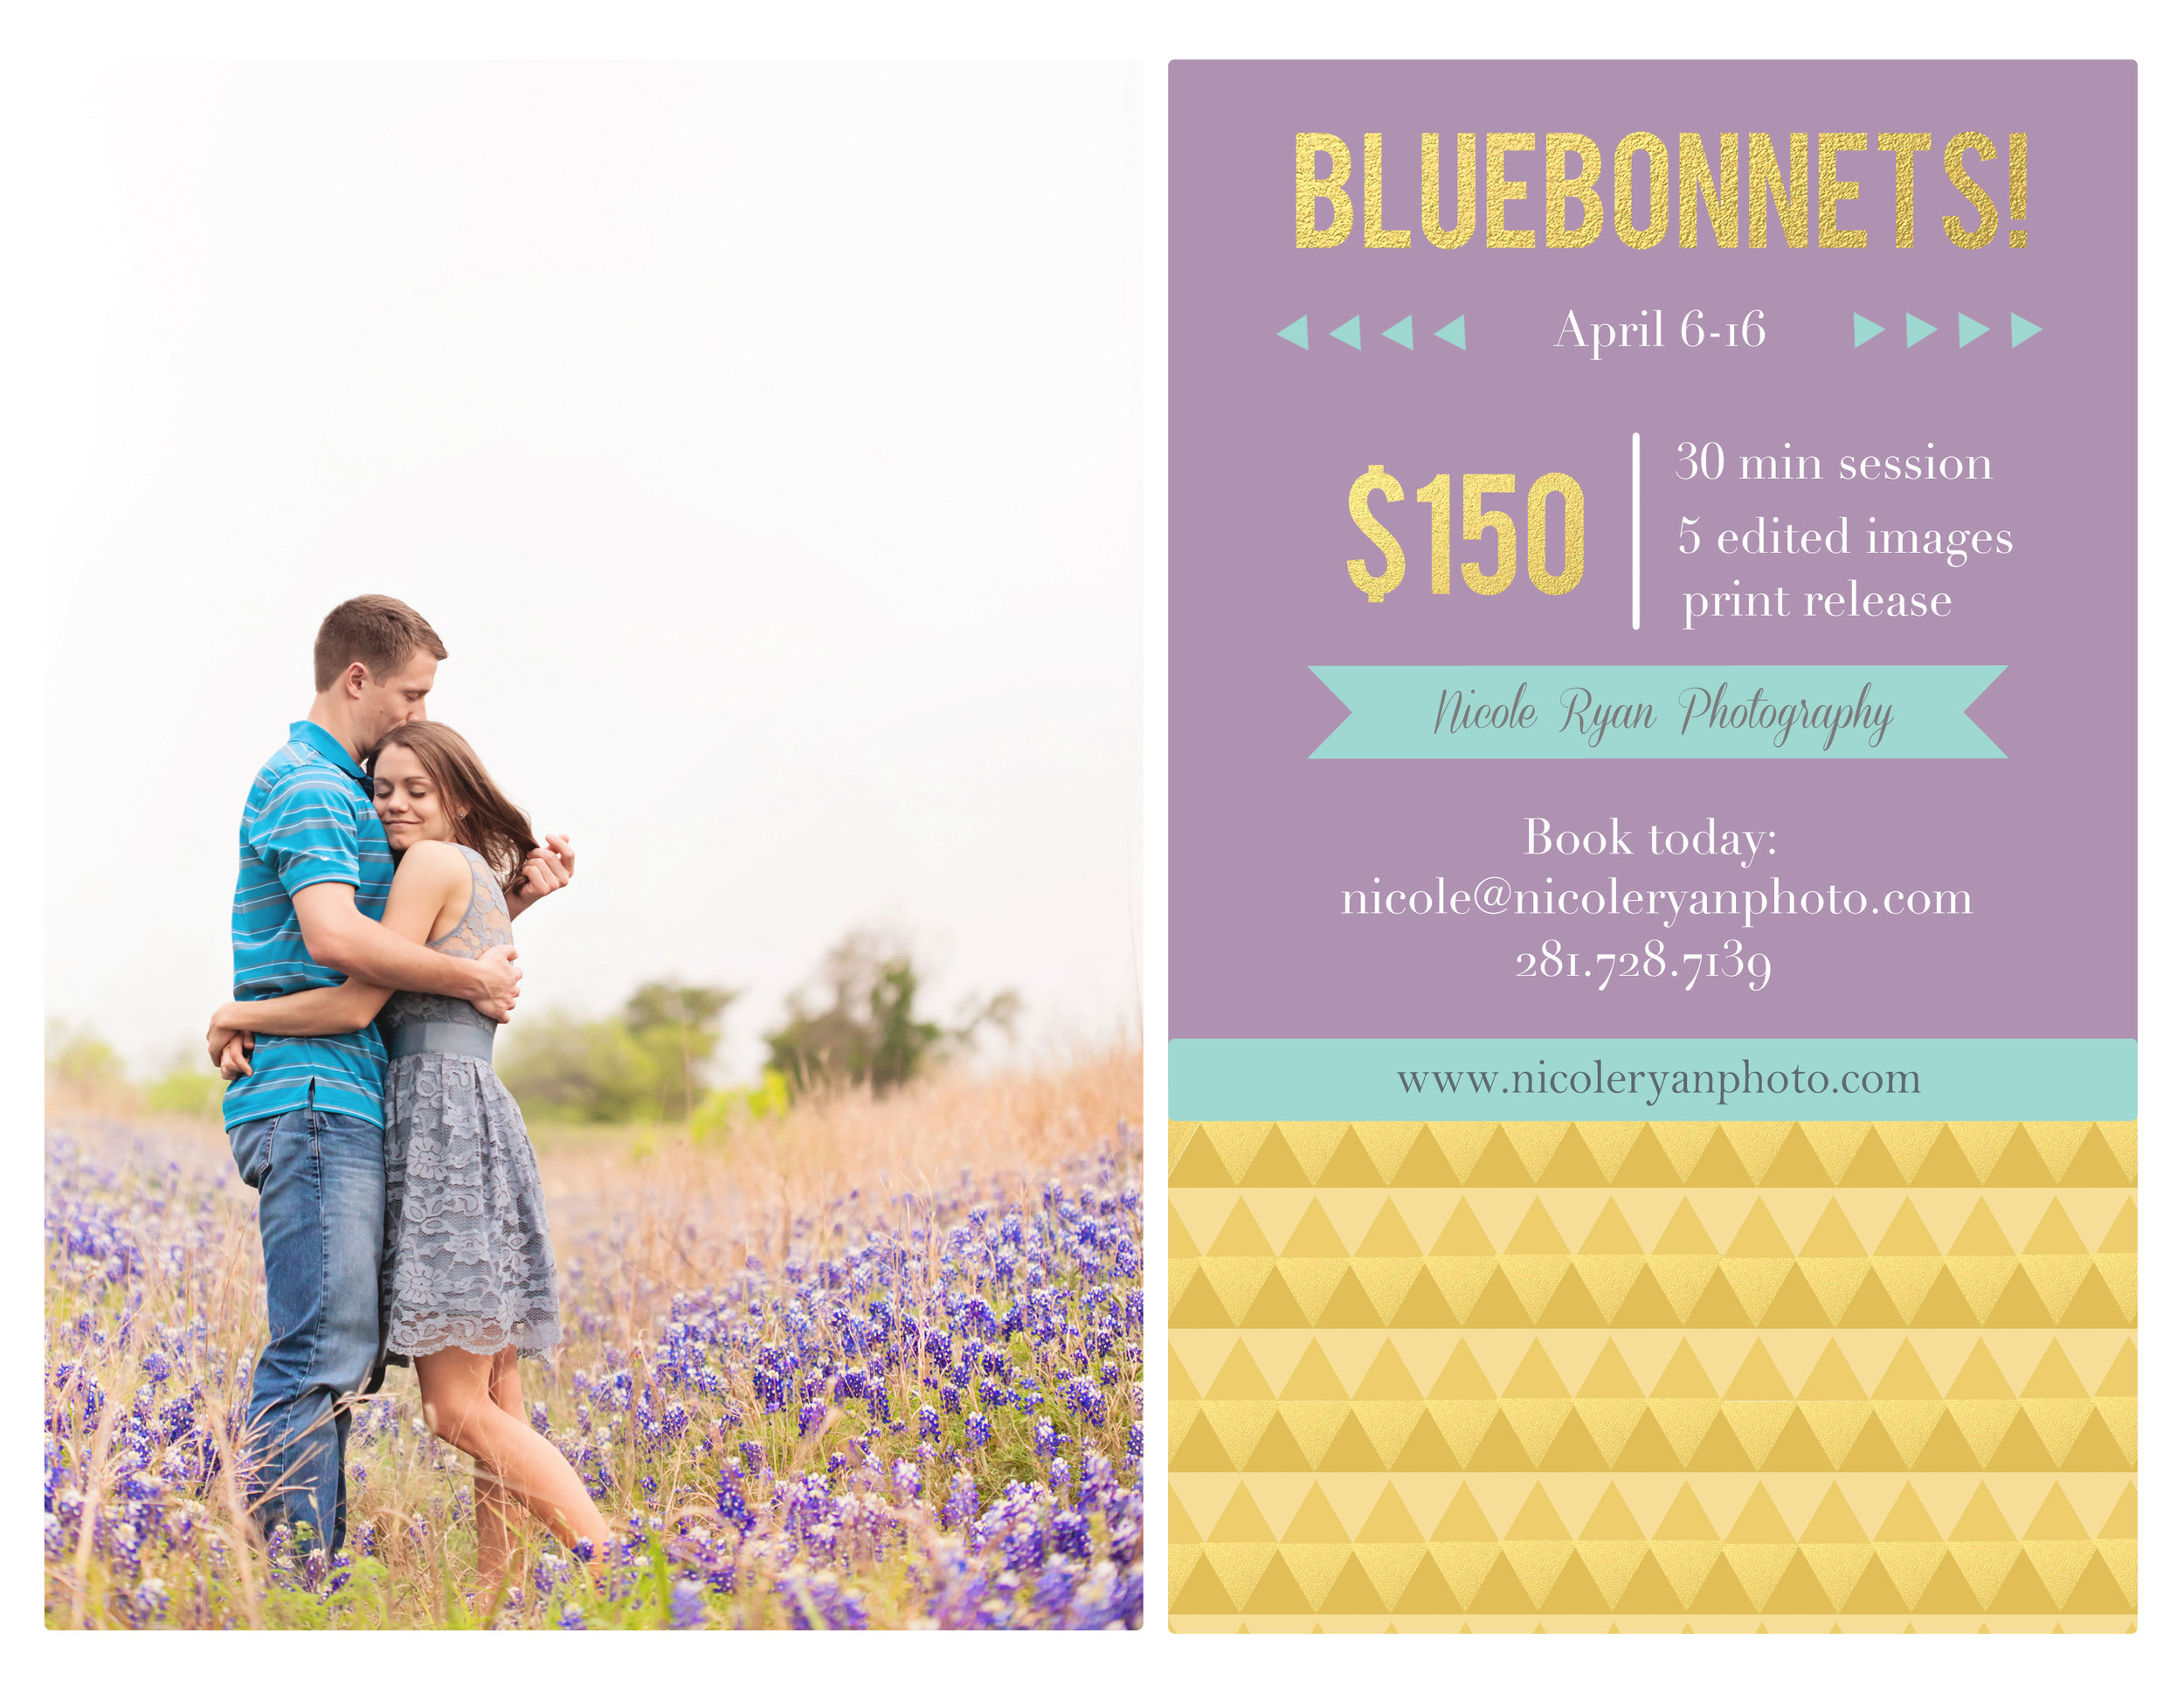 Bluebonnet Photos in Austin